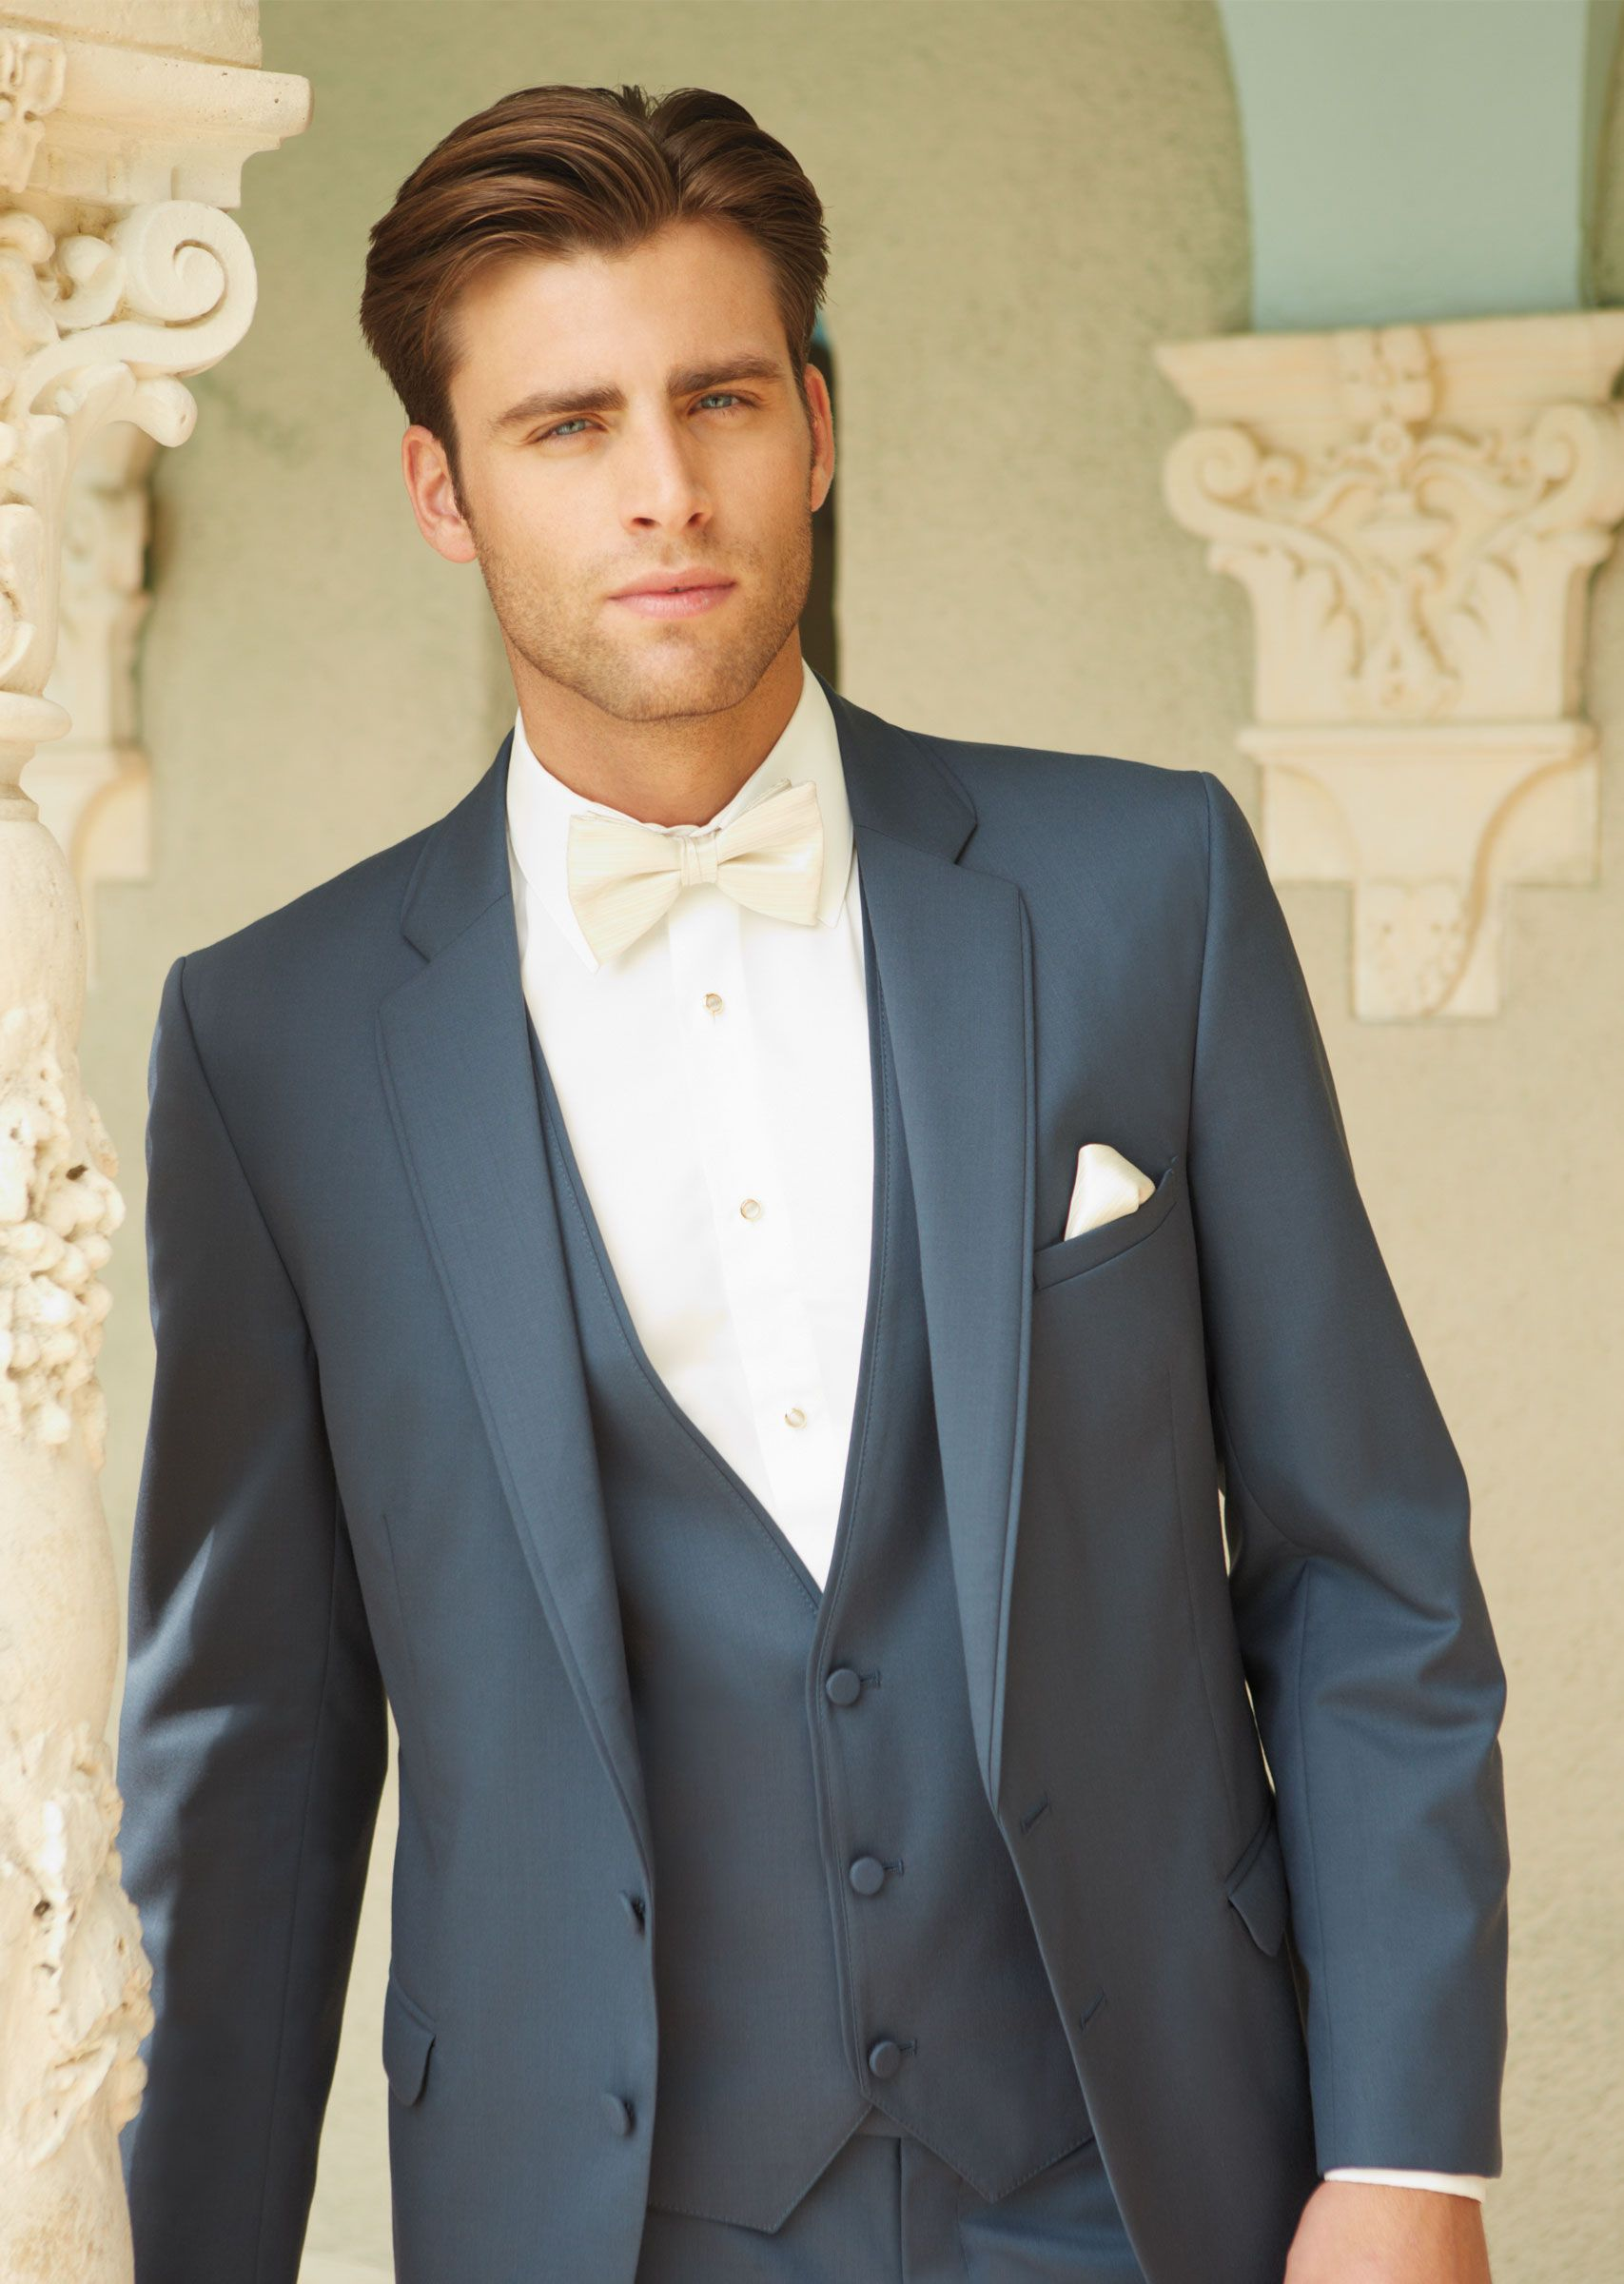 1000  images about Tuxedos on Pinterest | Formal wear, Bow ties